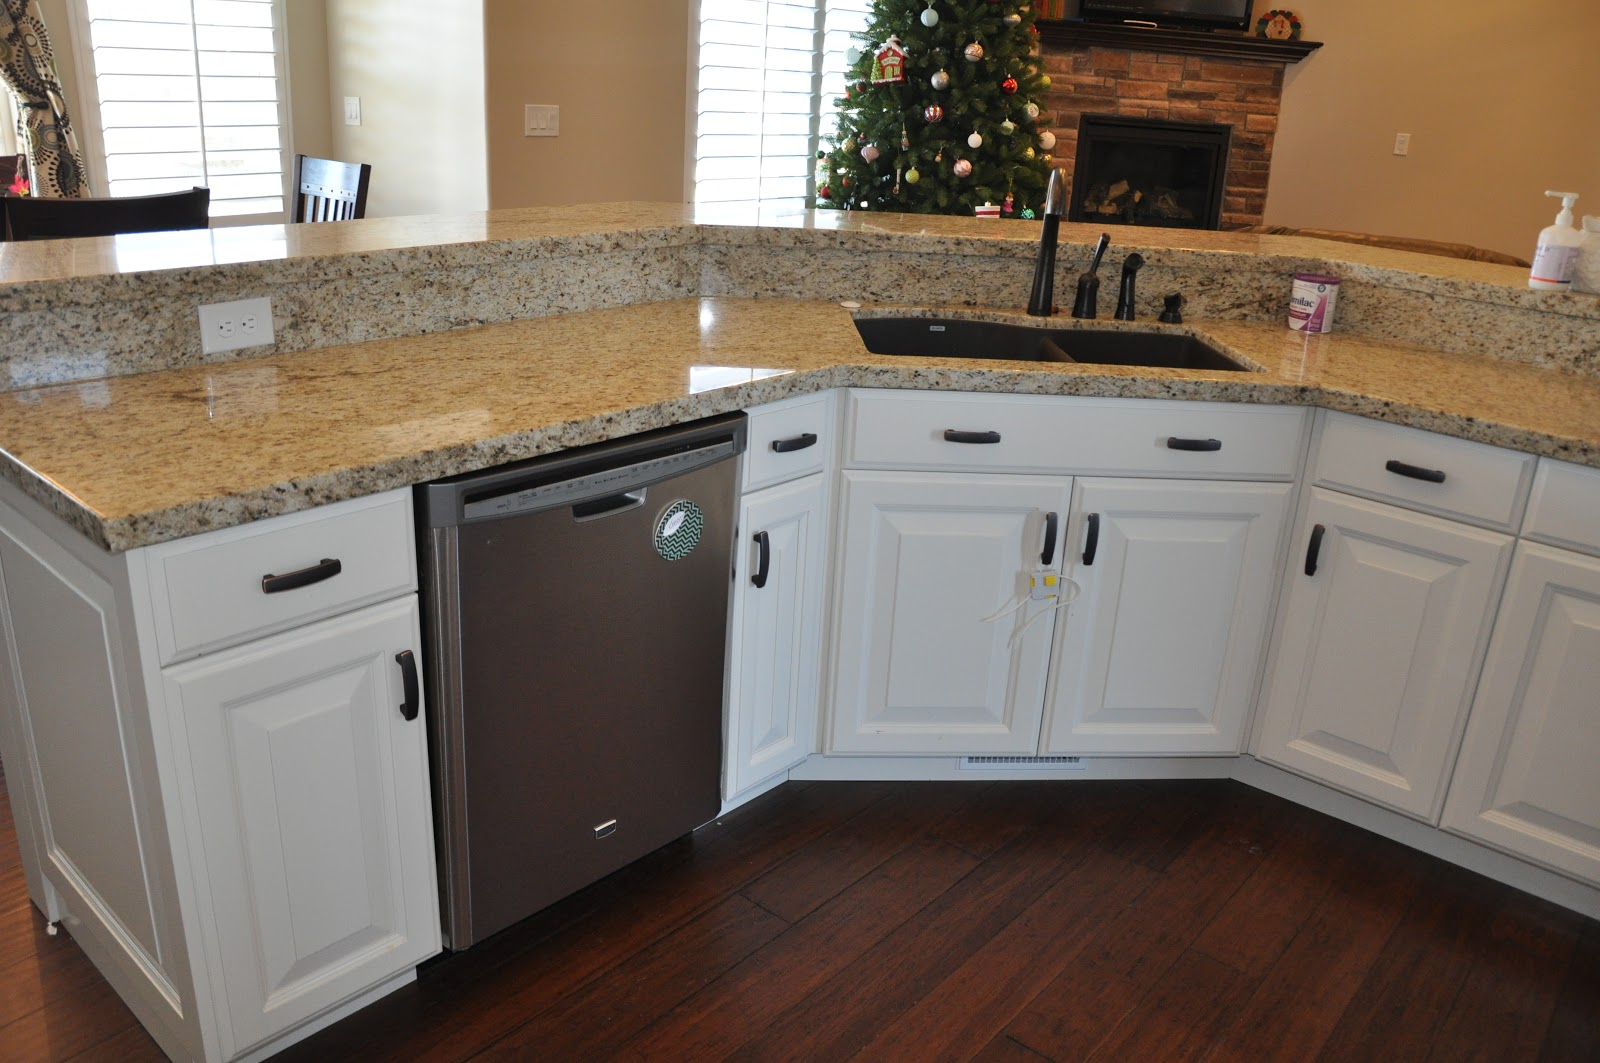 Stone ridge cabinets kitchen cabinets off white with black walnut hood - Pictures of off white kitchen cabinets ...